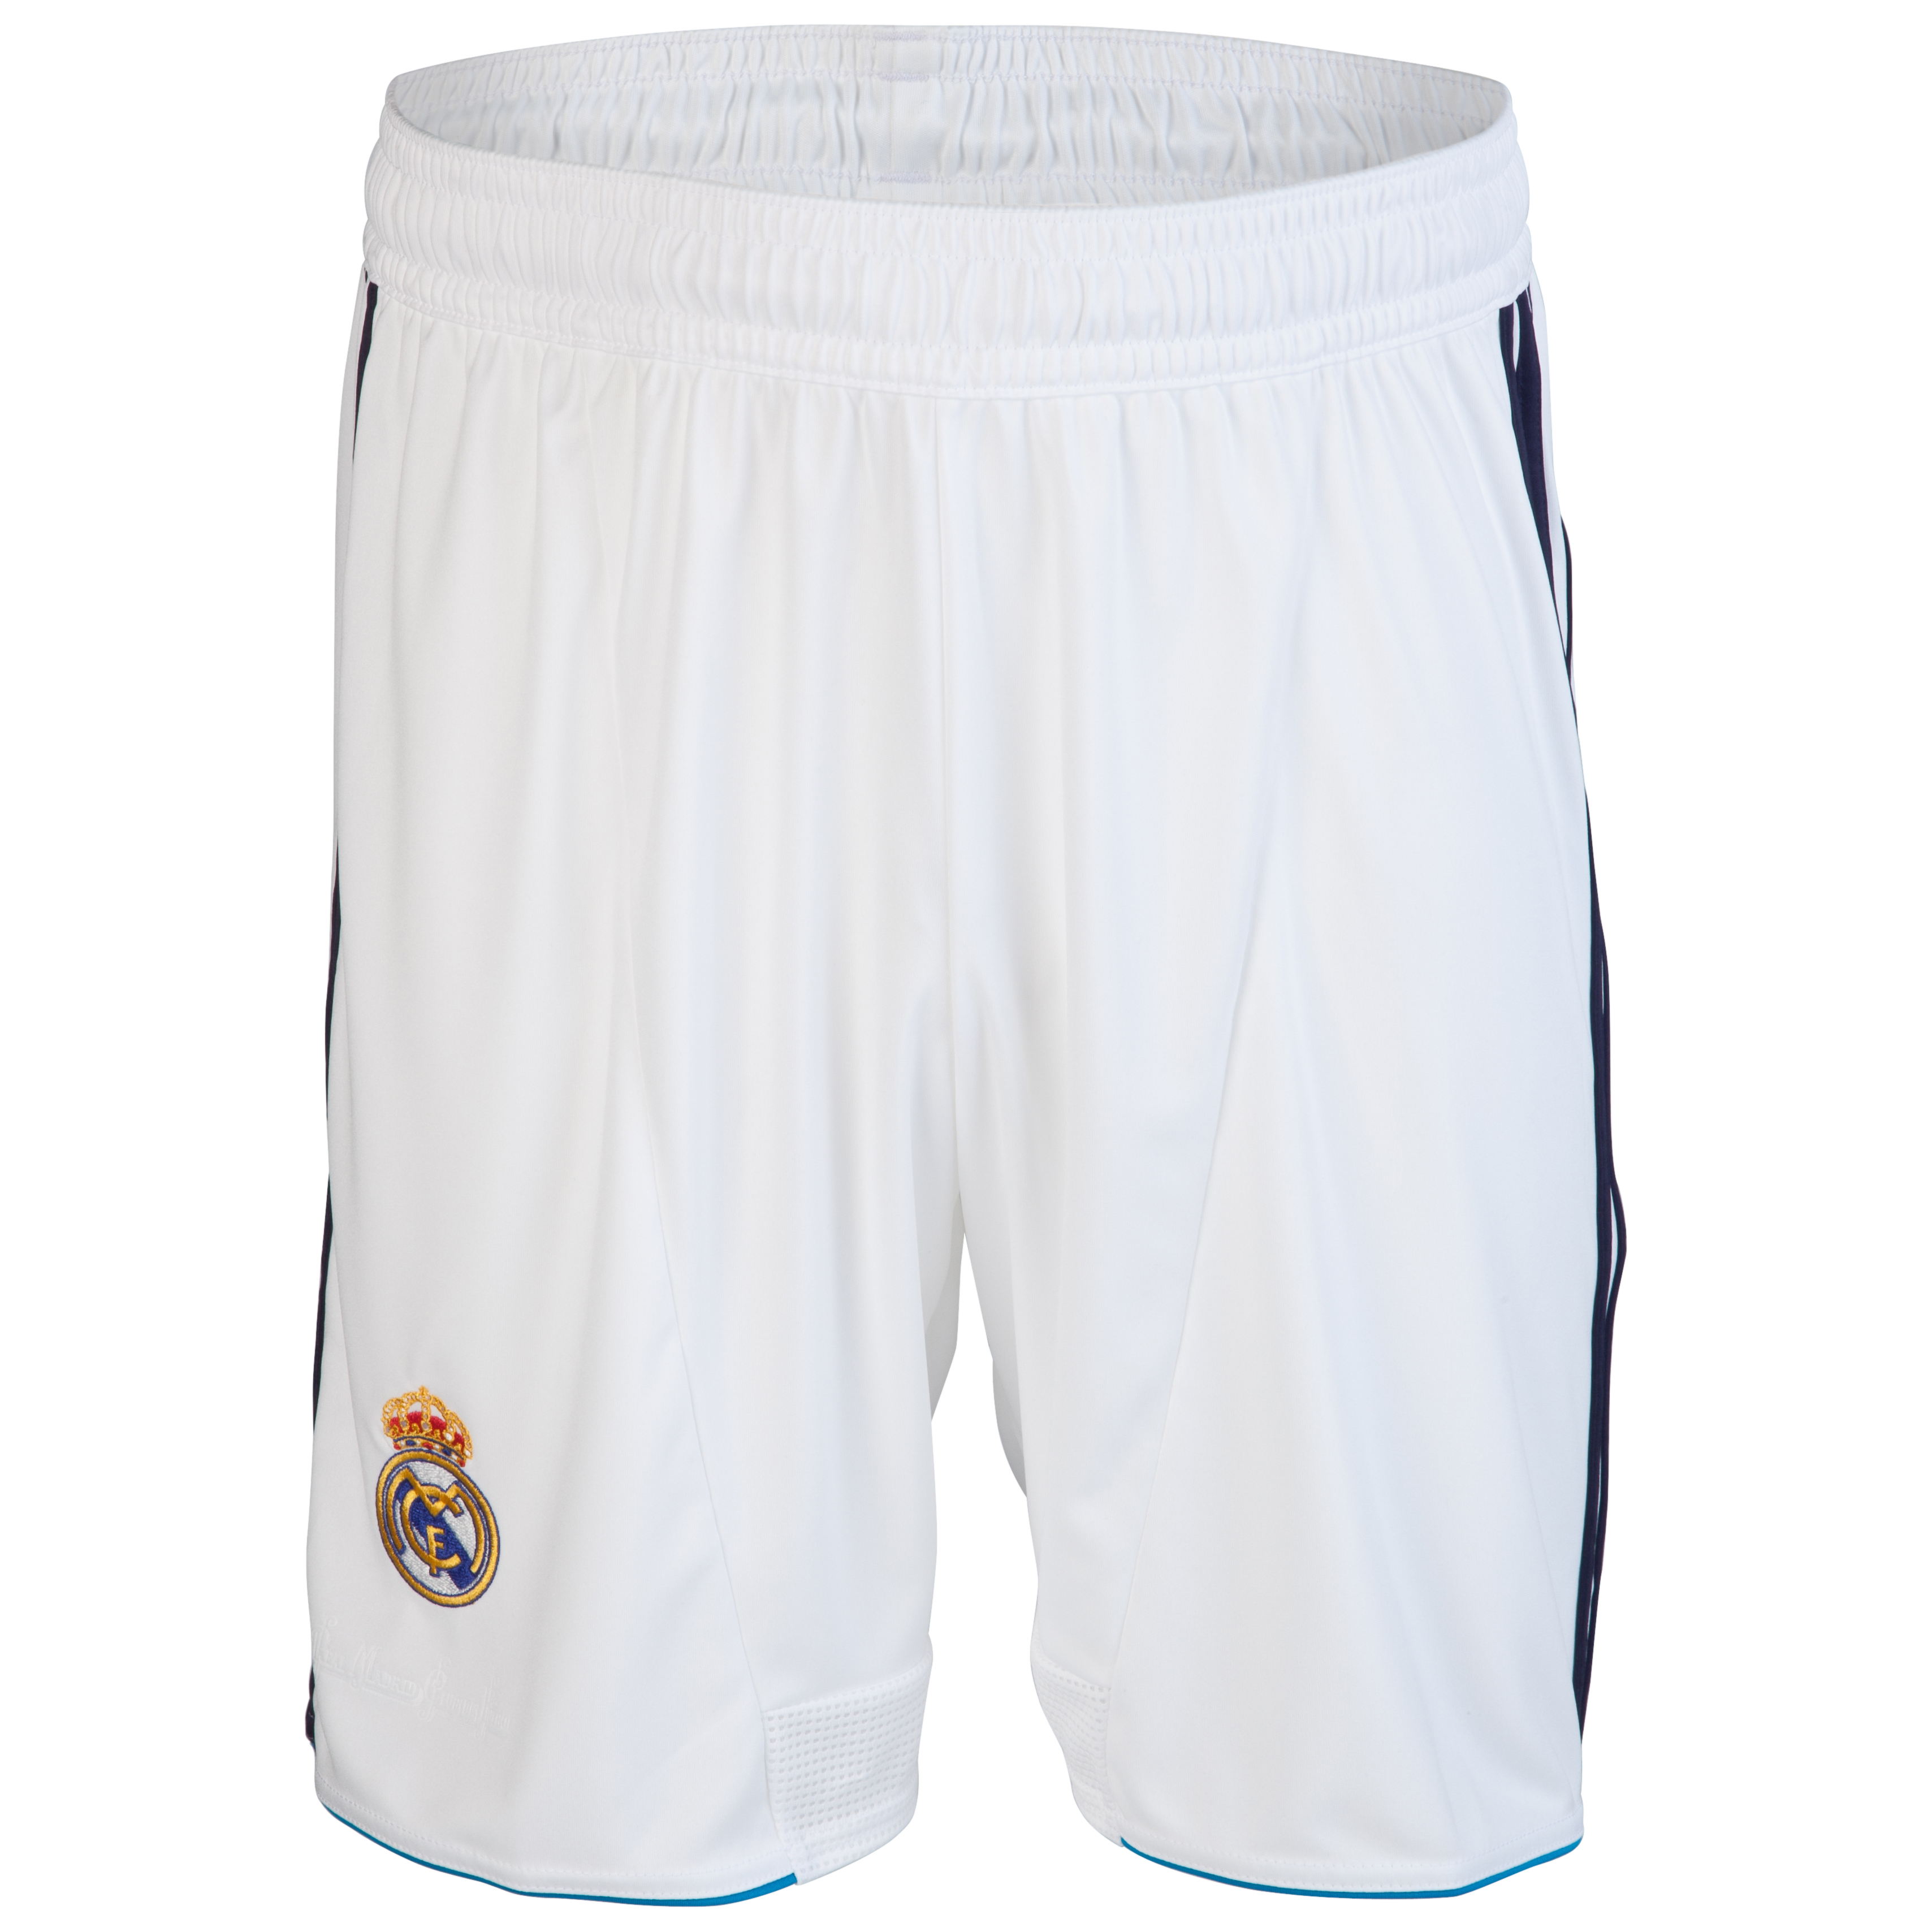 Pantalón corto local Real Madrid 2012/13